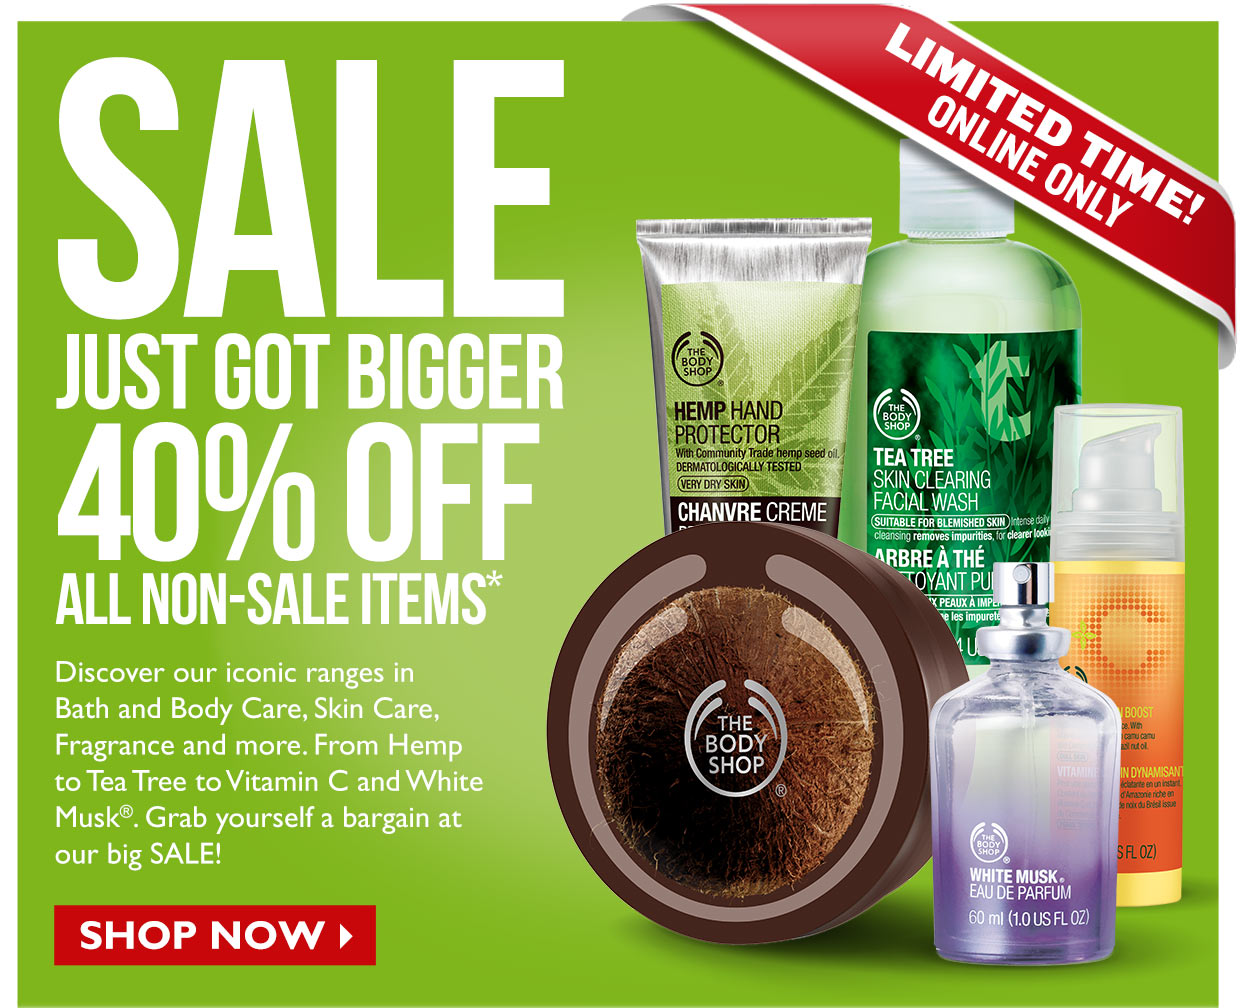 Pamper yourself for less with The Body Shop Sale. Here you will find cruelty free beauty products at a discounted rate so treat yourself today!